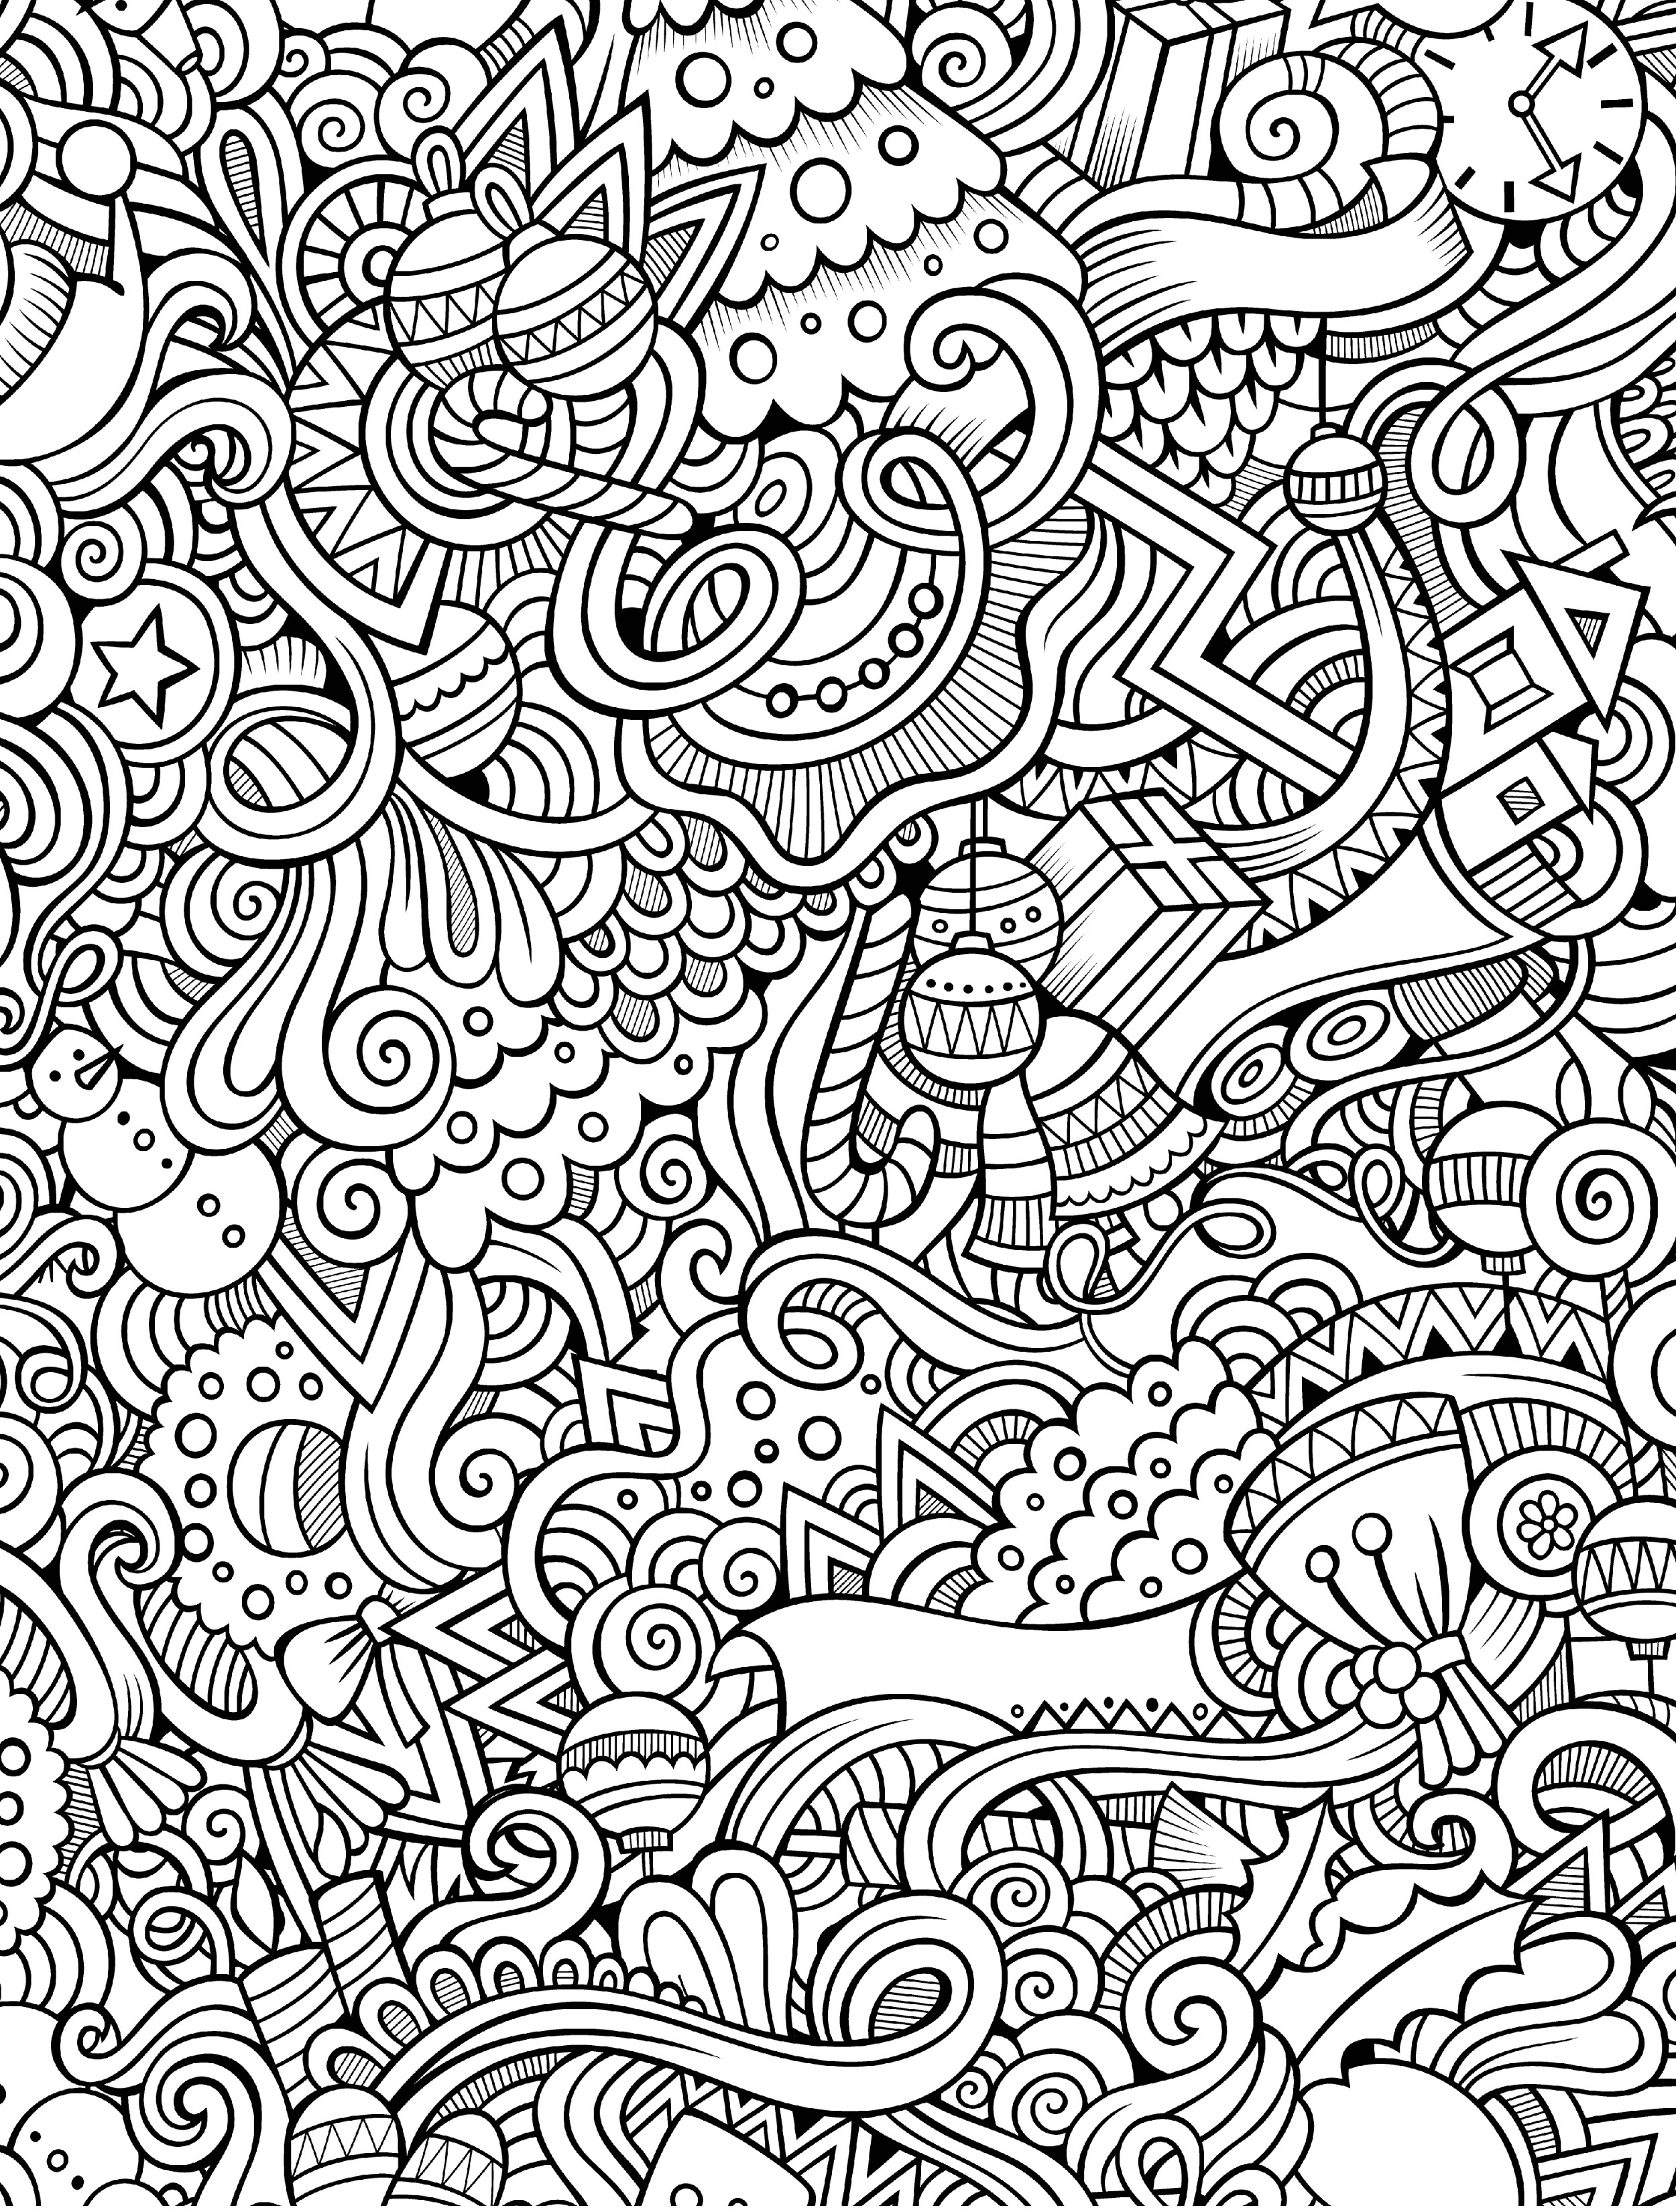 10 Free Printable Holiday Adult Coloring Pages - Free Printable Holiday Coloring Pages